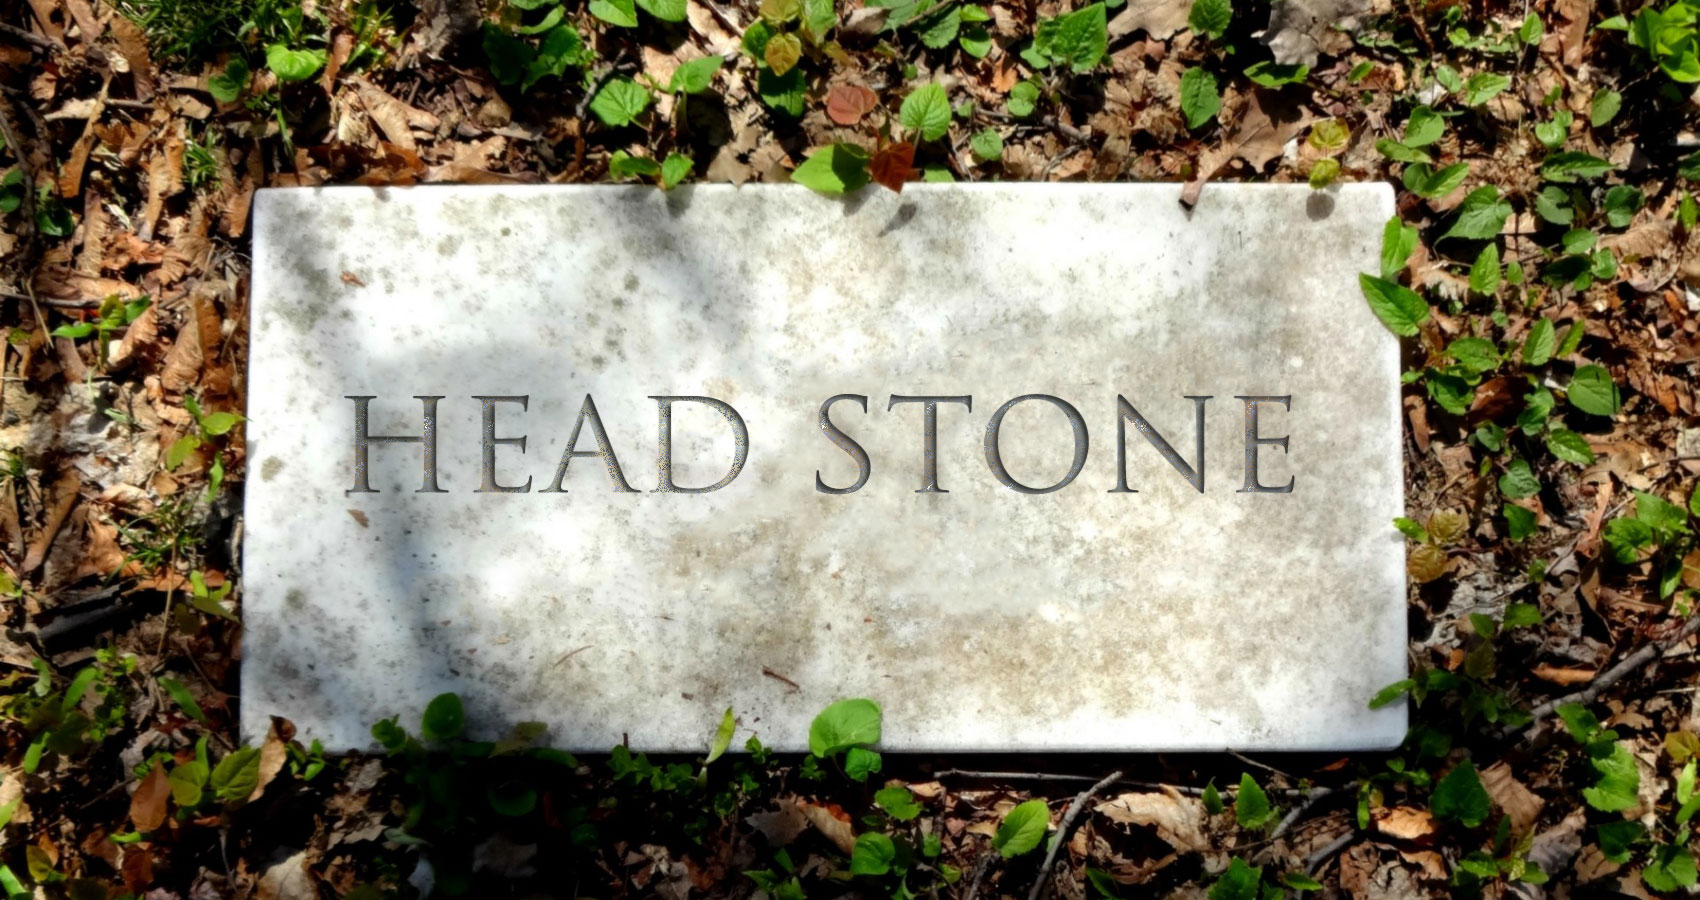 Head Stone written by SMiles at Spillwords.com